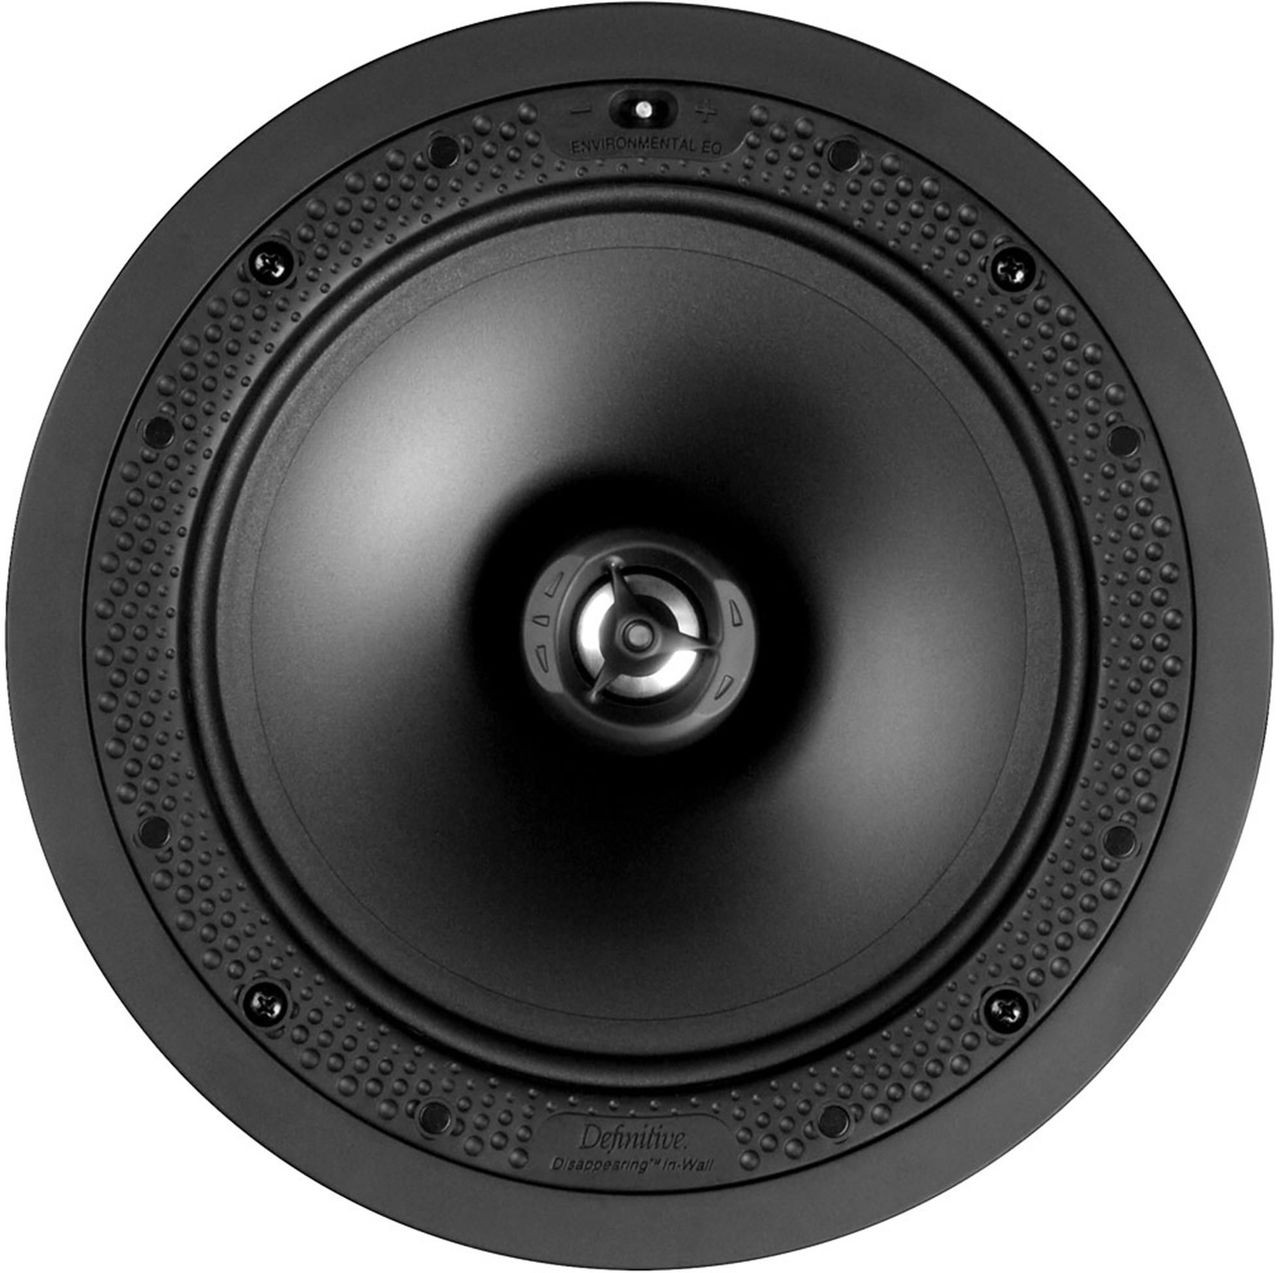 "Definitive Technology® DI 8R 8"" In-Wall/In-Ceiling Speakers-"